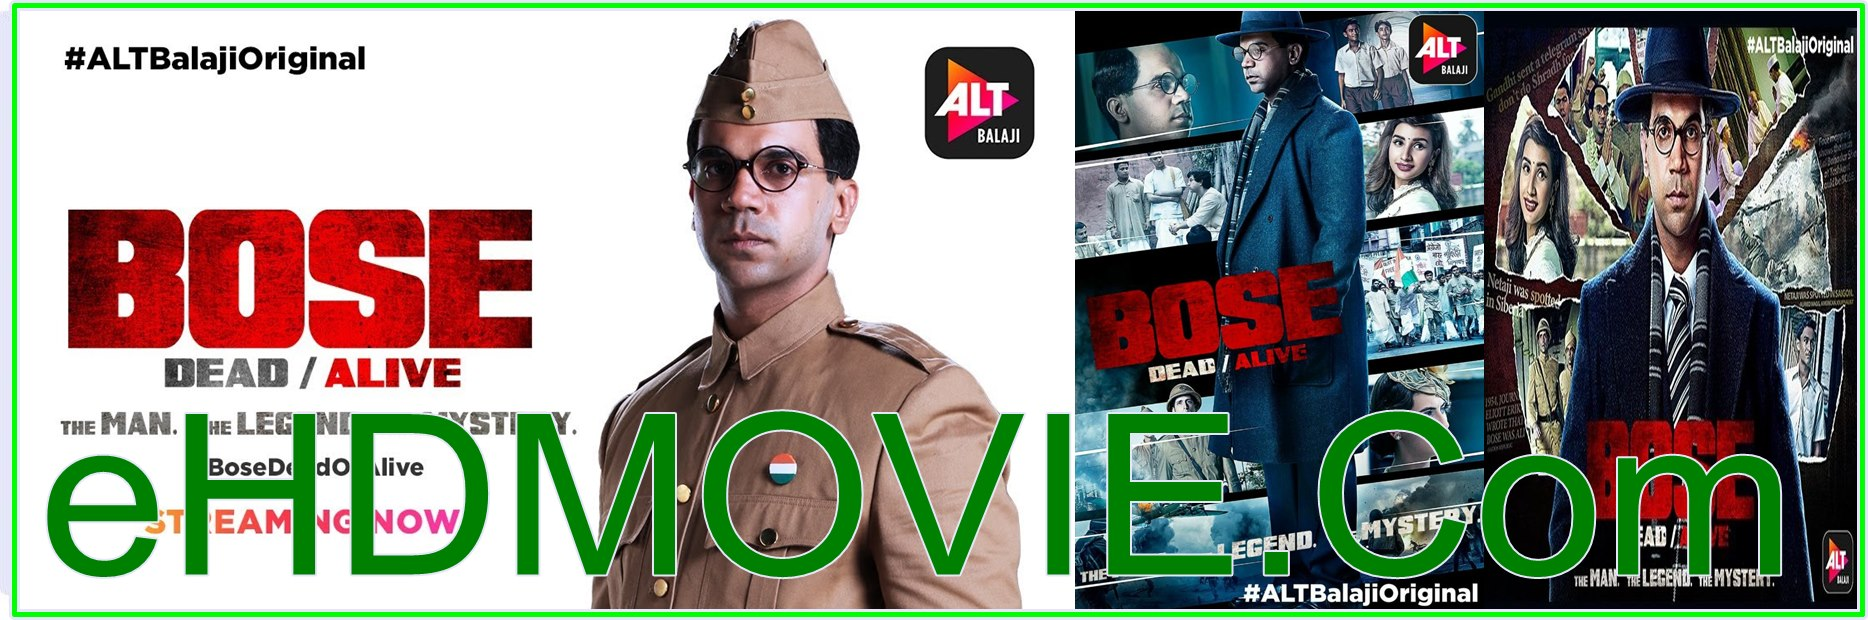 Bose: Dead/Alive 2017 S01 Complete Hindi 720p BRRip ESubs